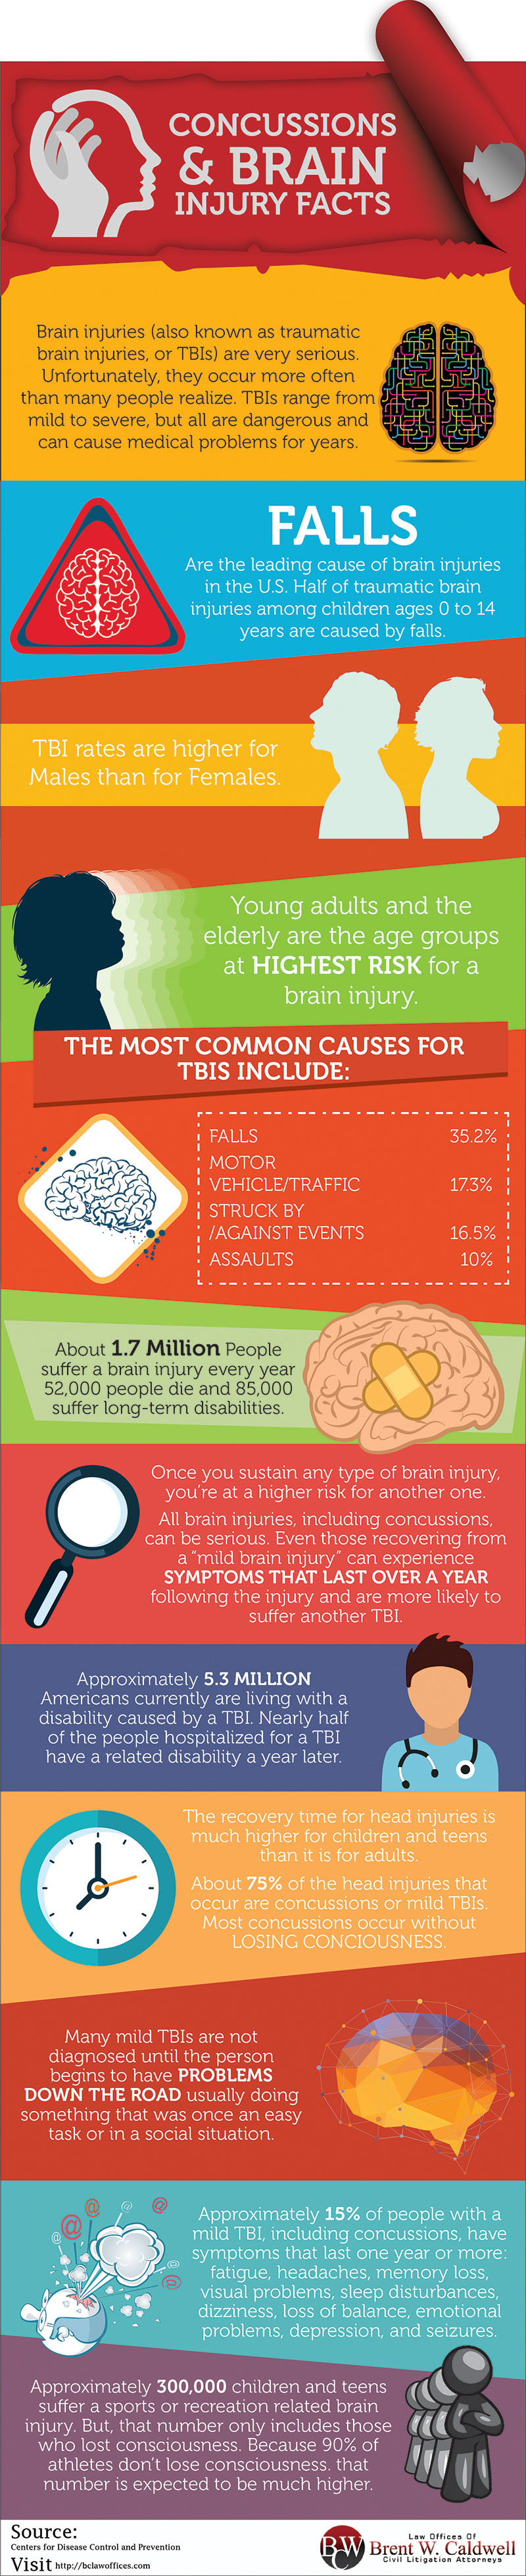 Concussions & Brain Injury Facts Everyone Should Know Infographic